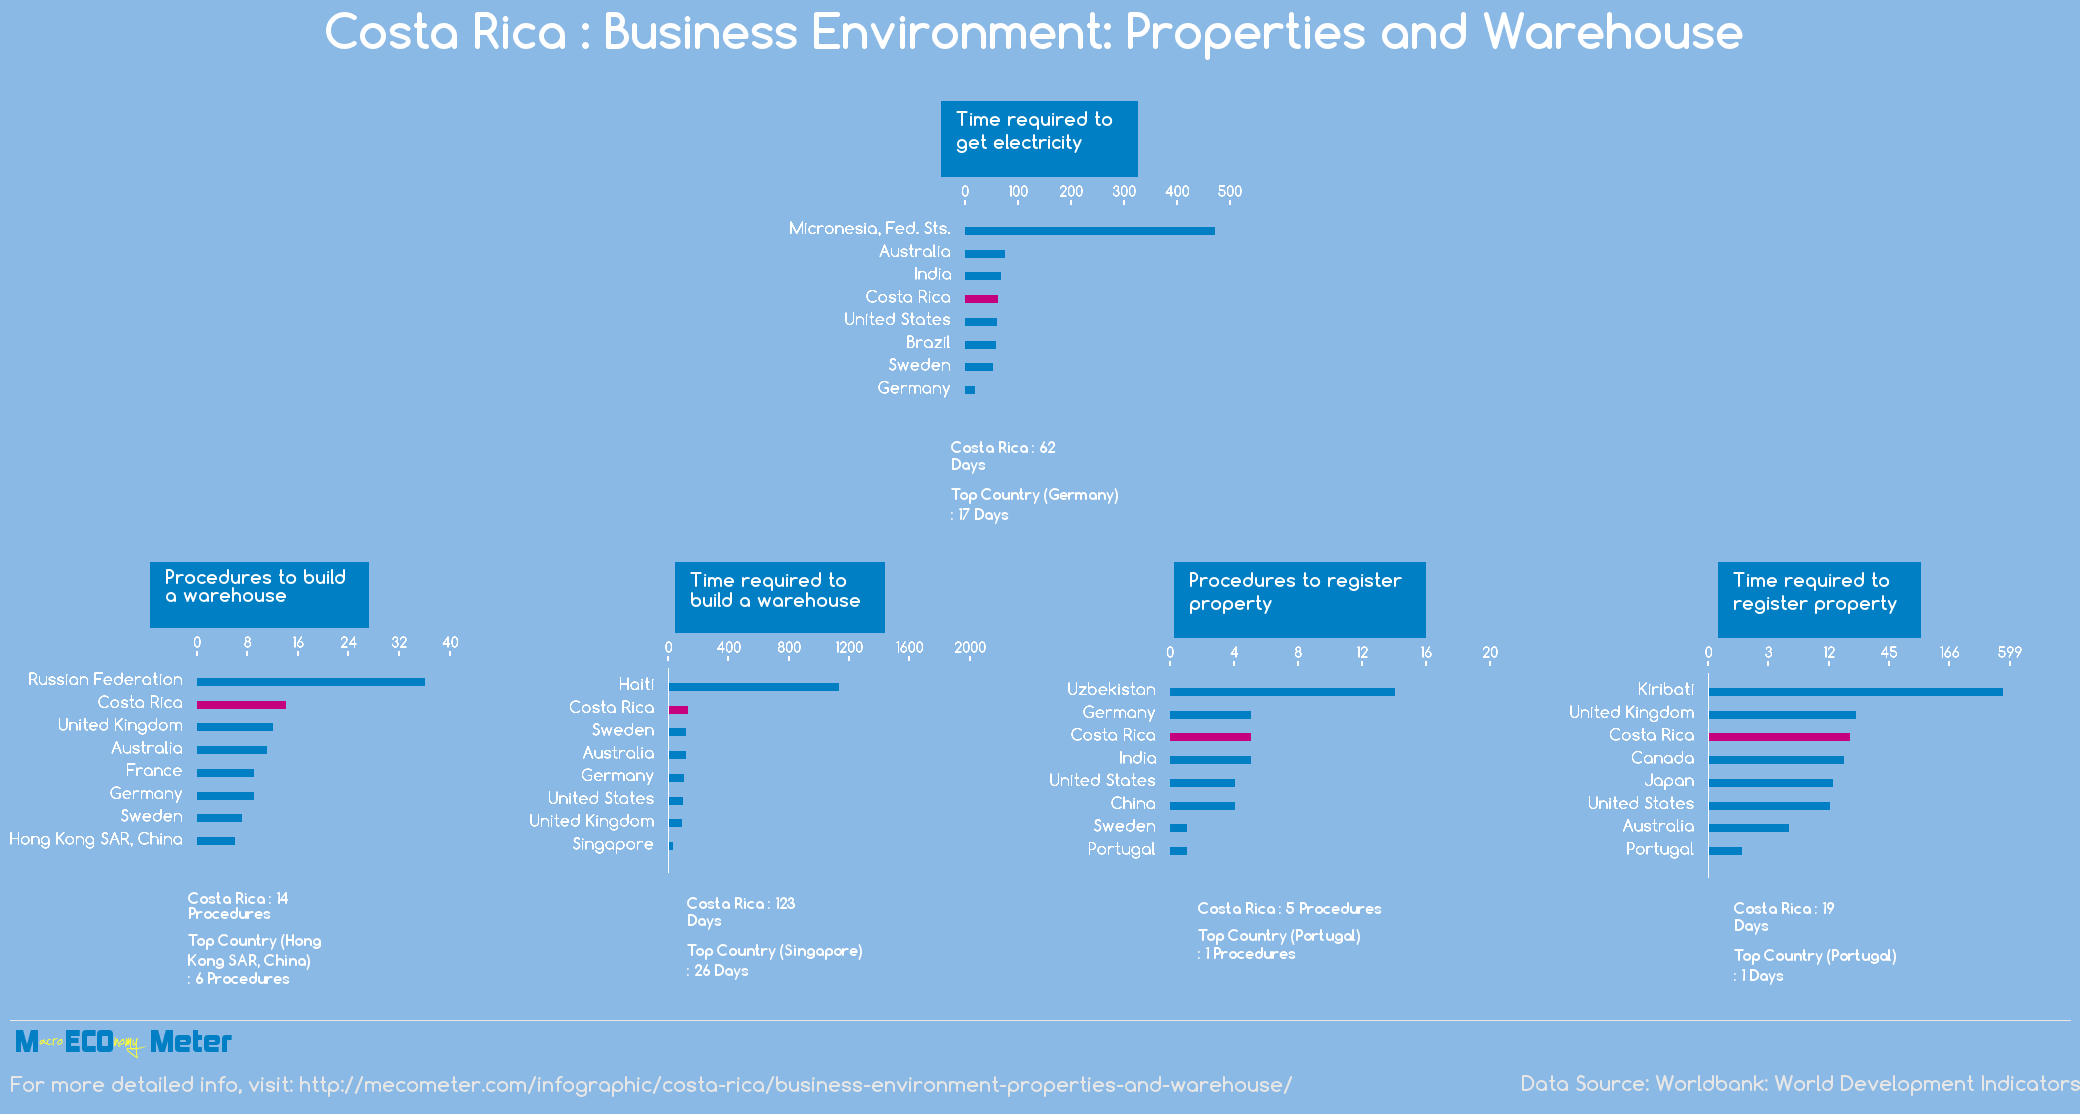 Costa Rica : Business Environment: Properties and Warehouse